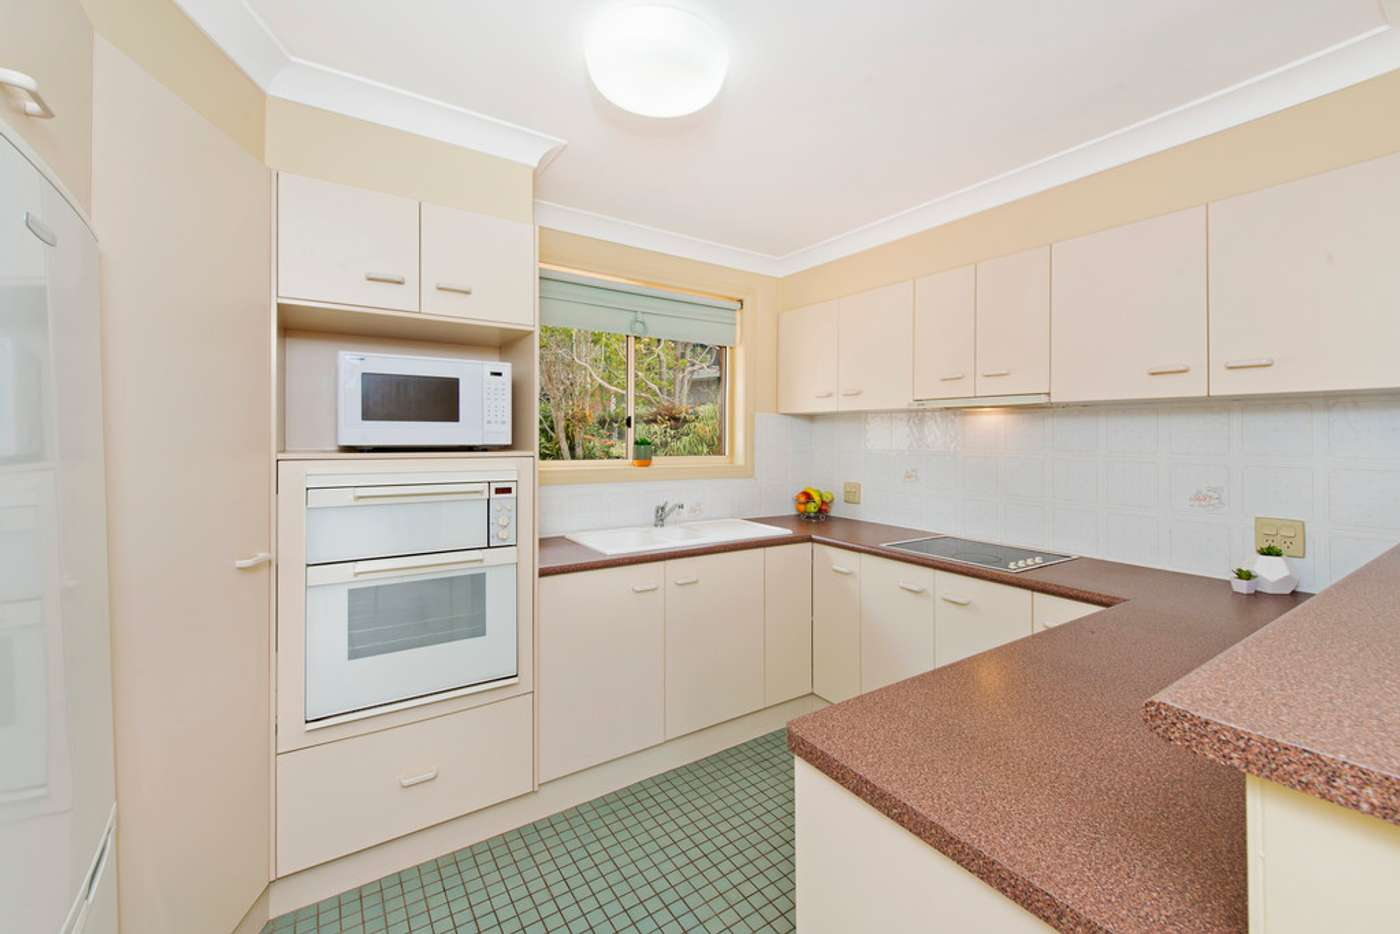 Sixth view of Homely villa listing, 1/14 Blackbutt Crescent, Laurieton NSW 2443